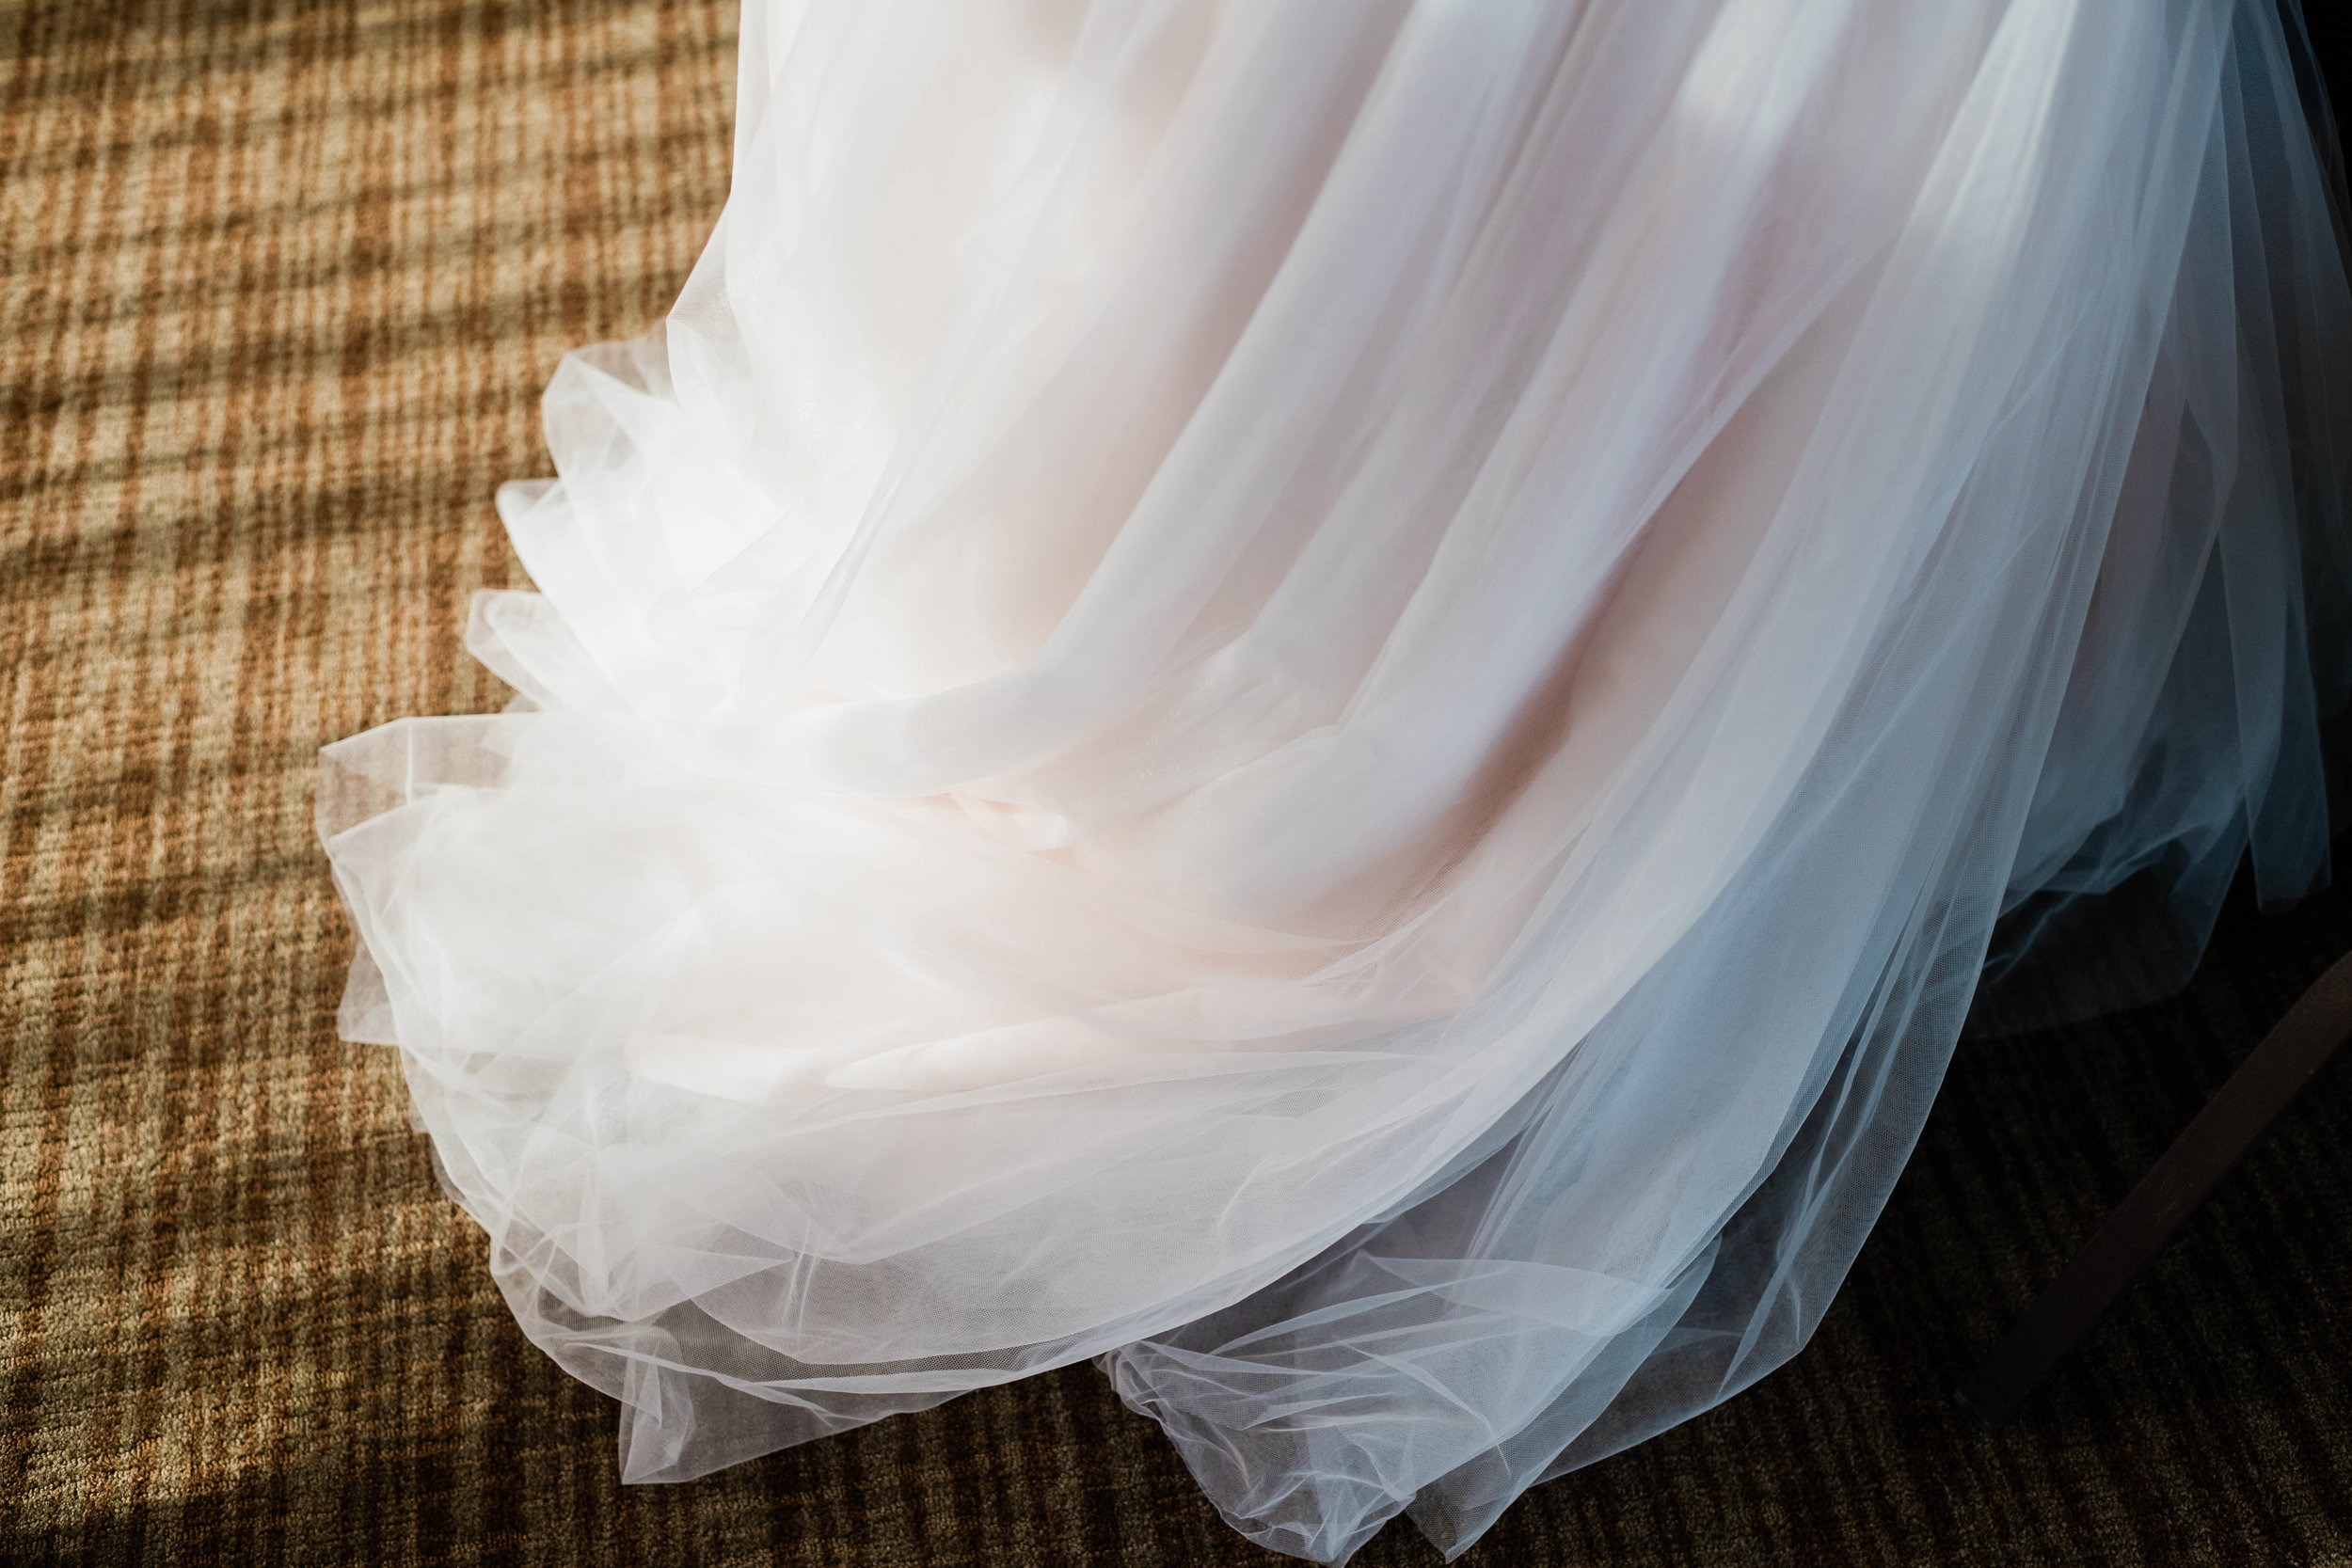 Sunlight shines on the bottom of a wedding dress